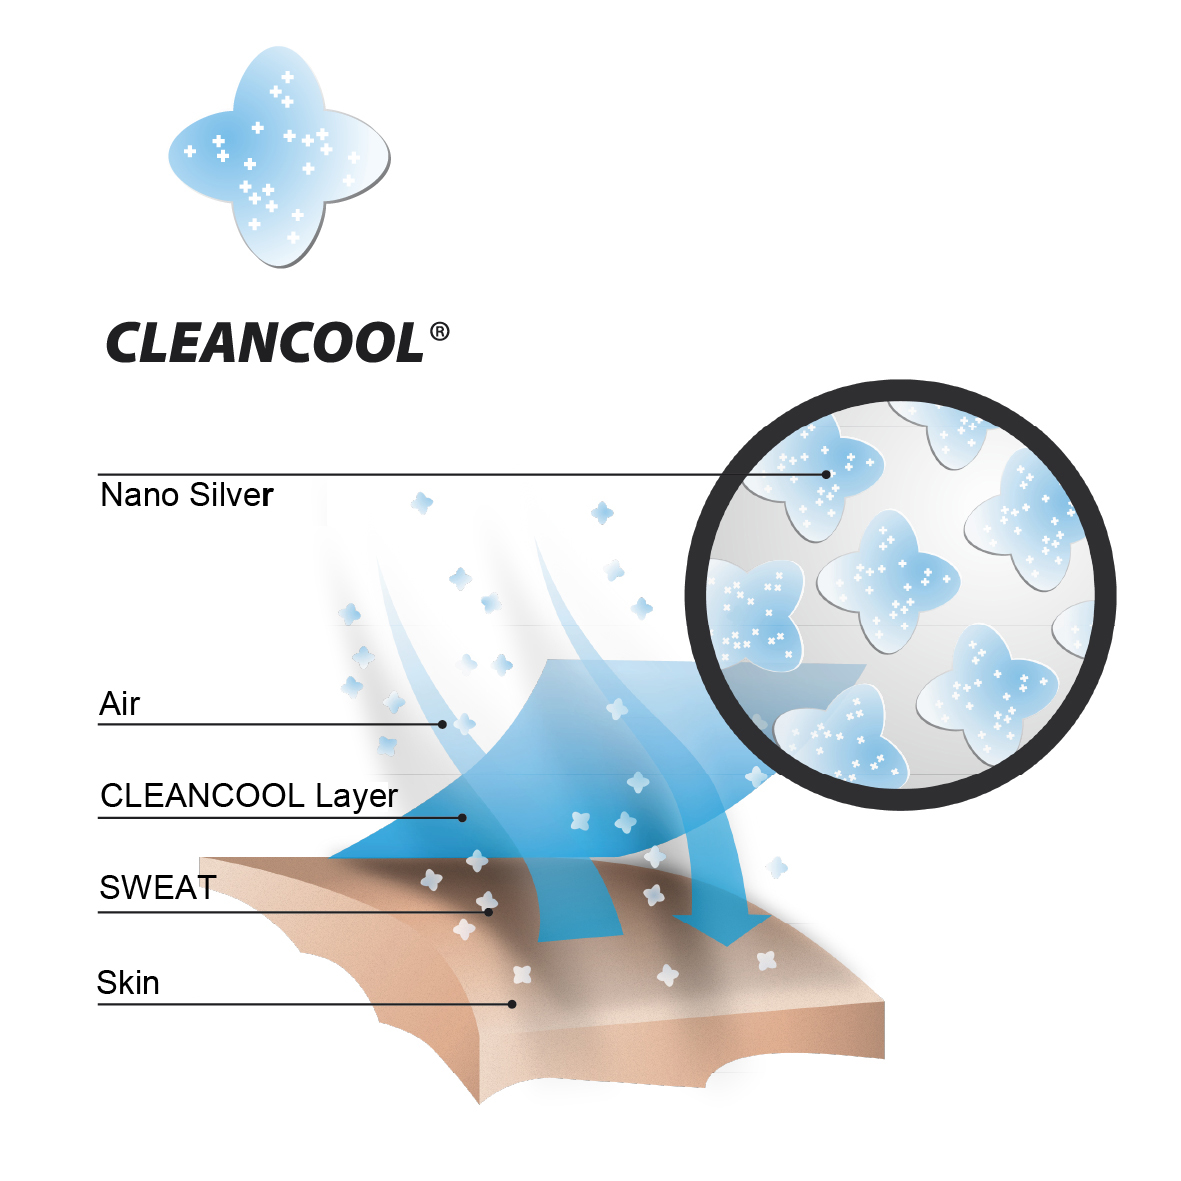 cleancool_fabric-1